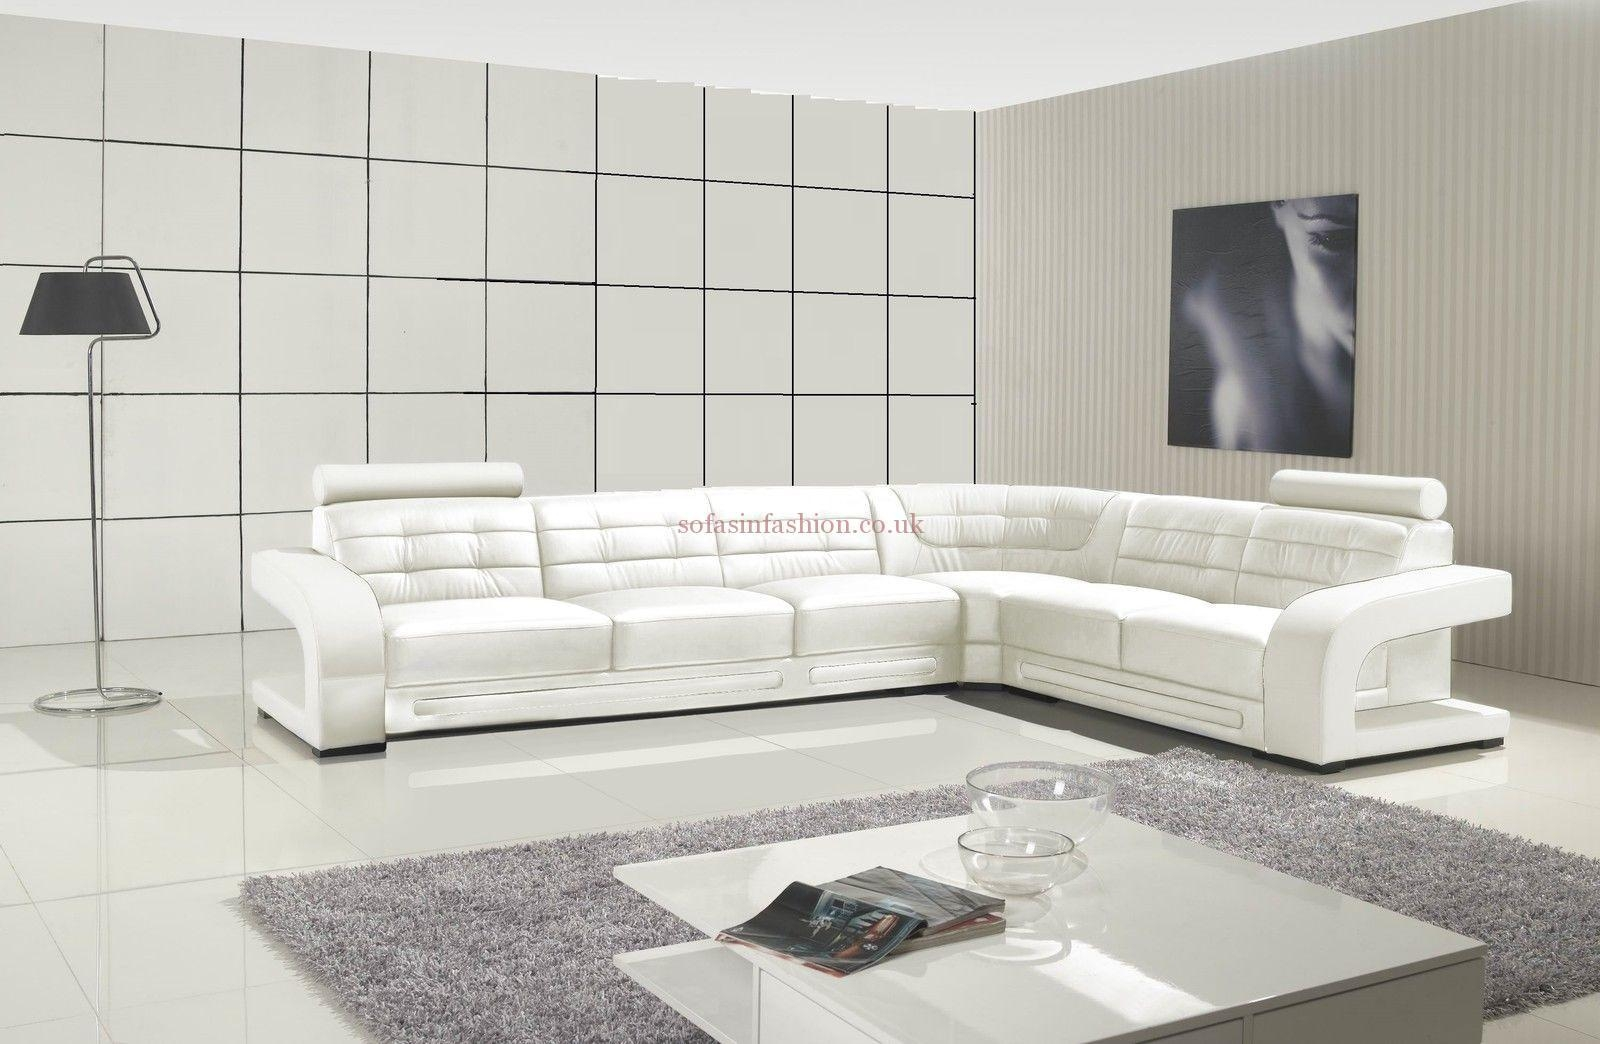 Modern Style White Corner Sofa With Leather Corner Sofa Black For White Leather Corner Sofa (Image 12 of 20)